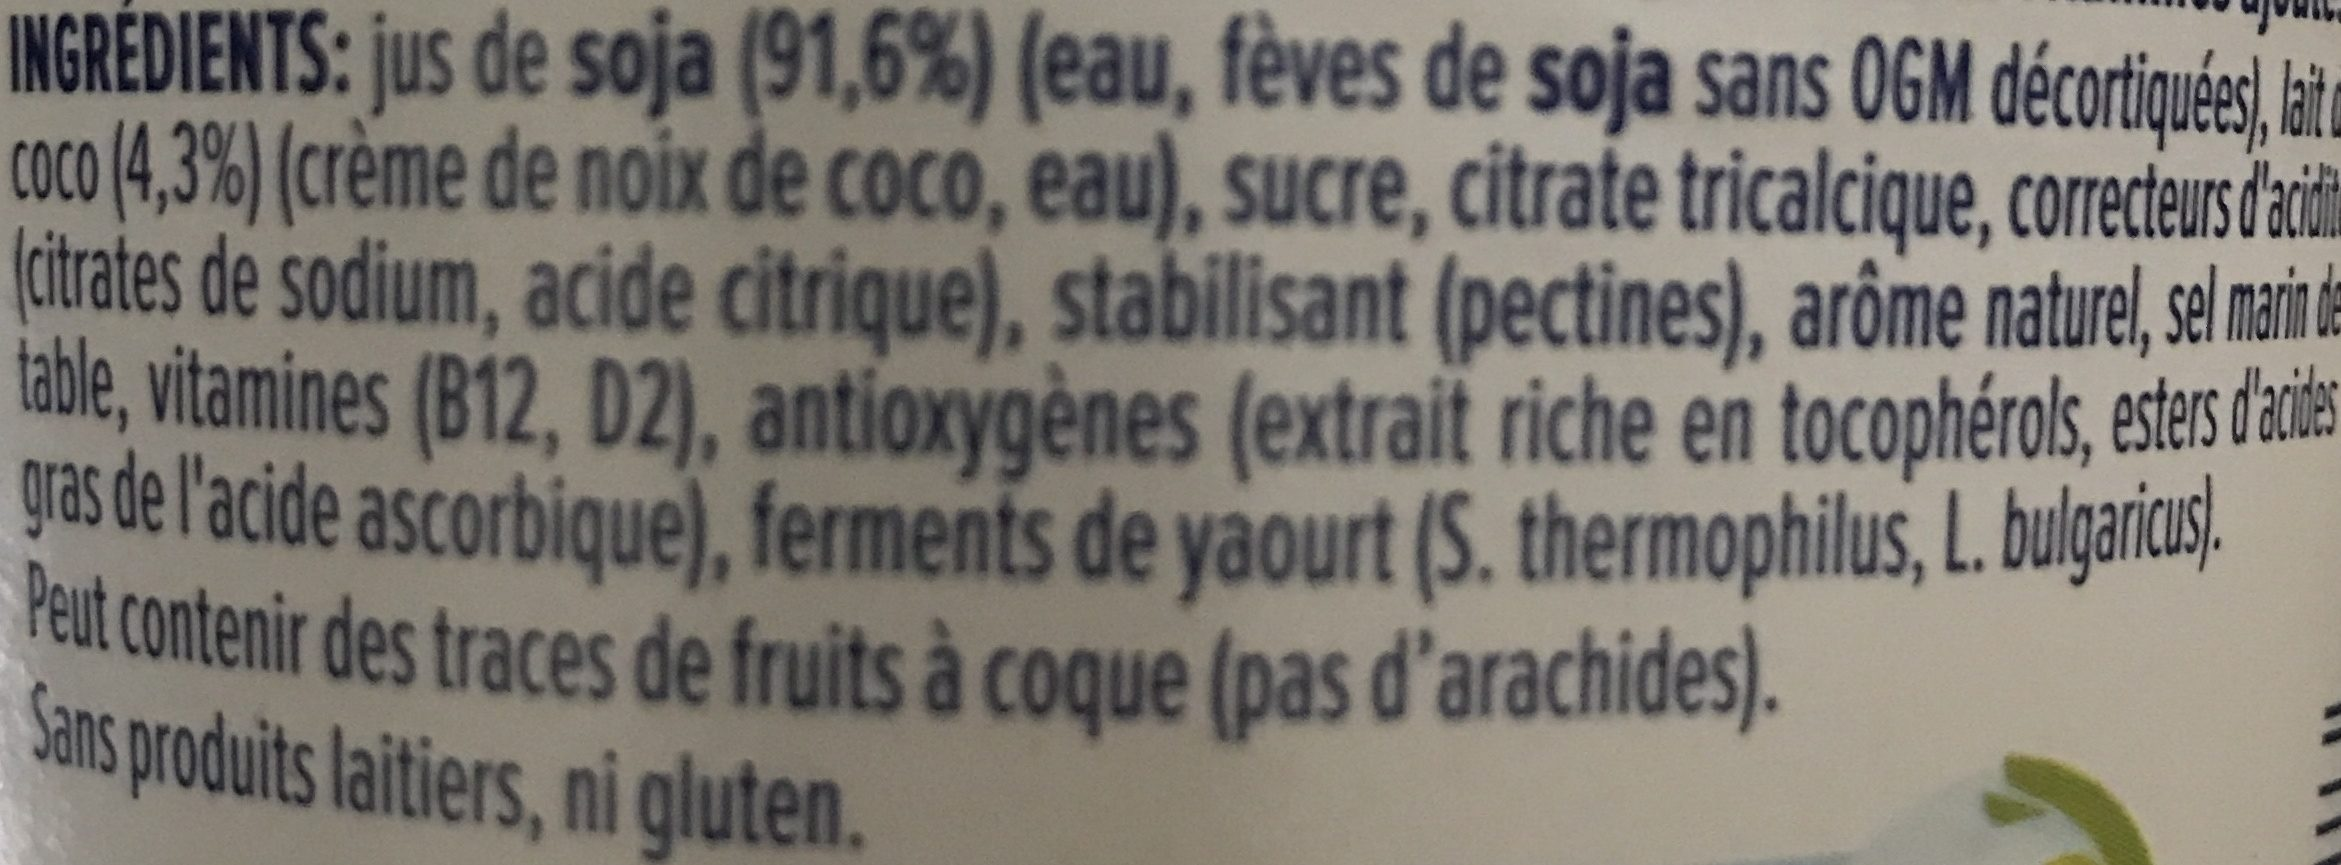 Alpro coco - Ingredients